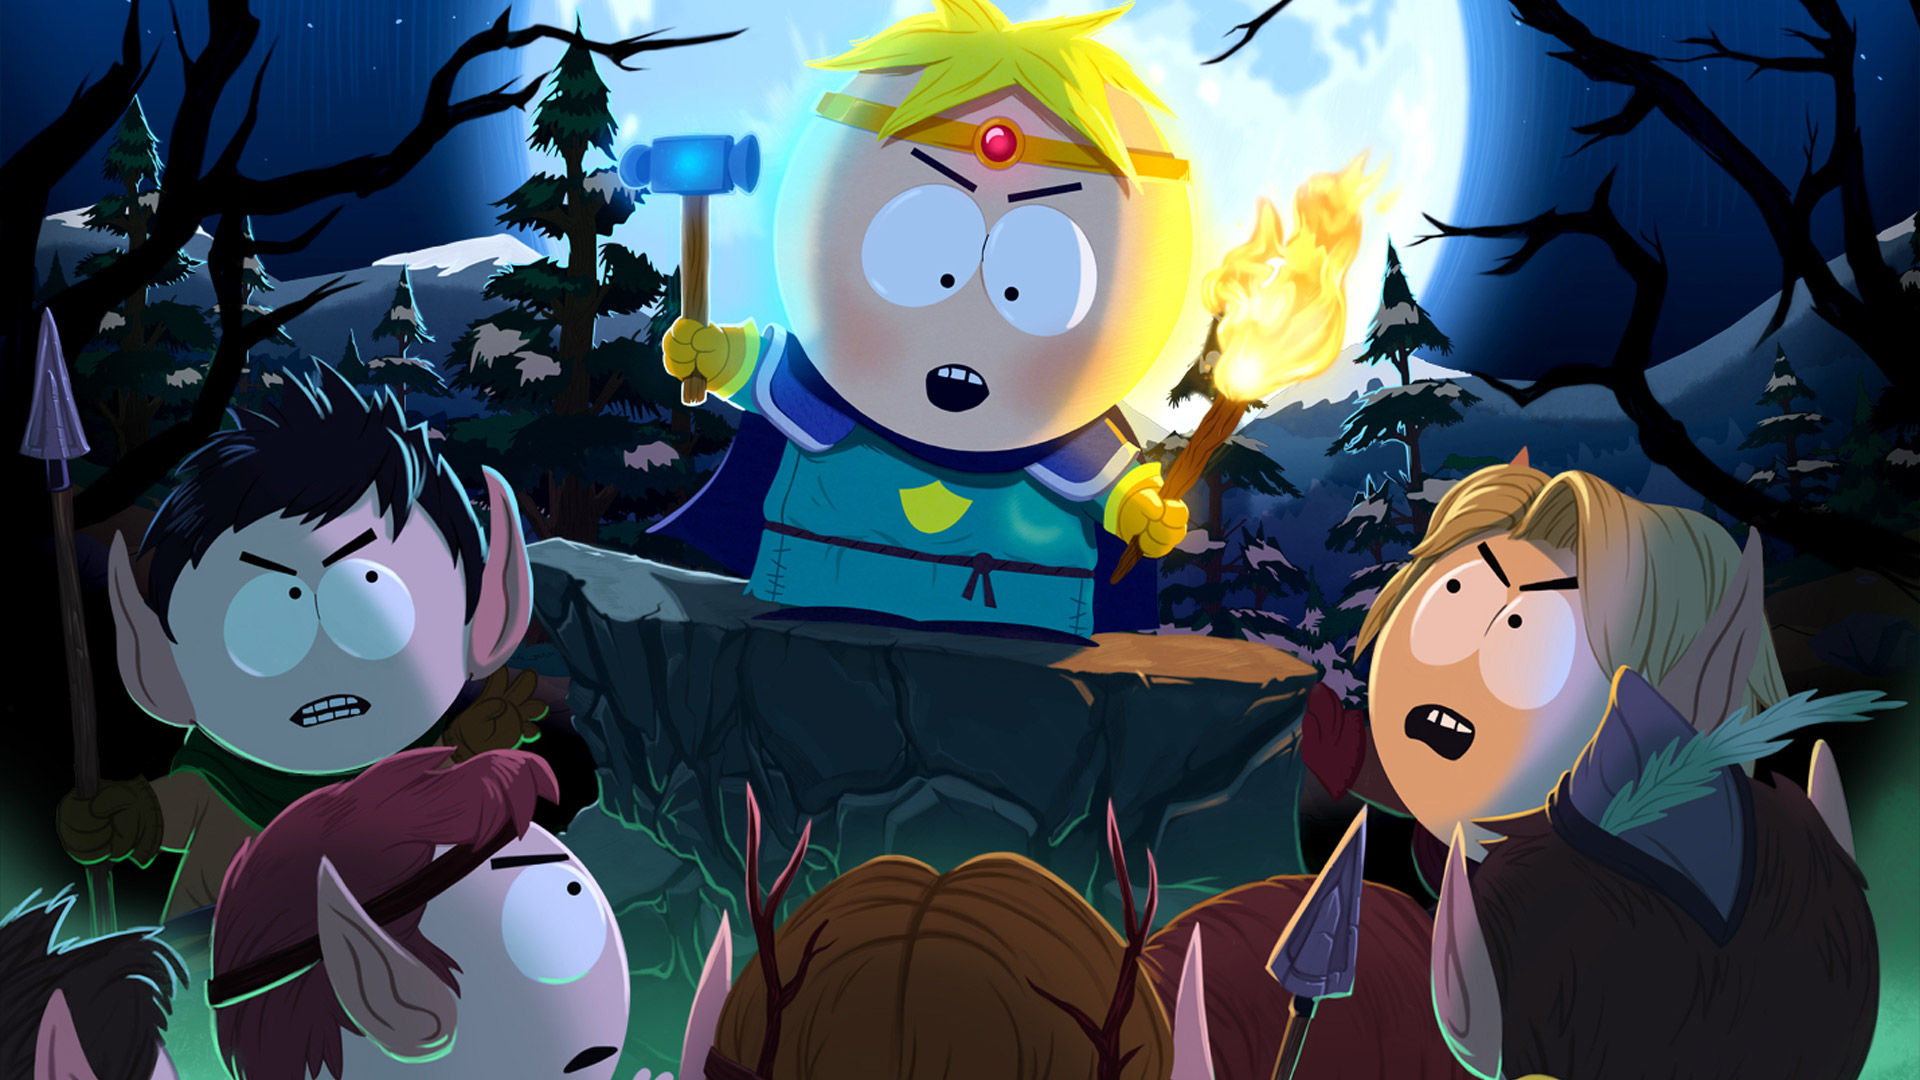 South Park: The Stick of Truth Wallpaper in 1920x1080